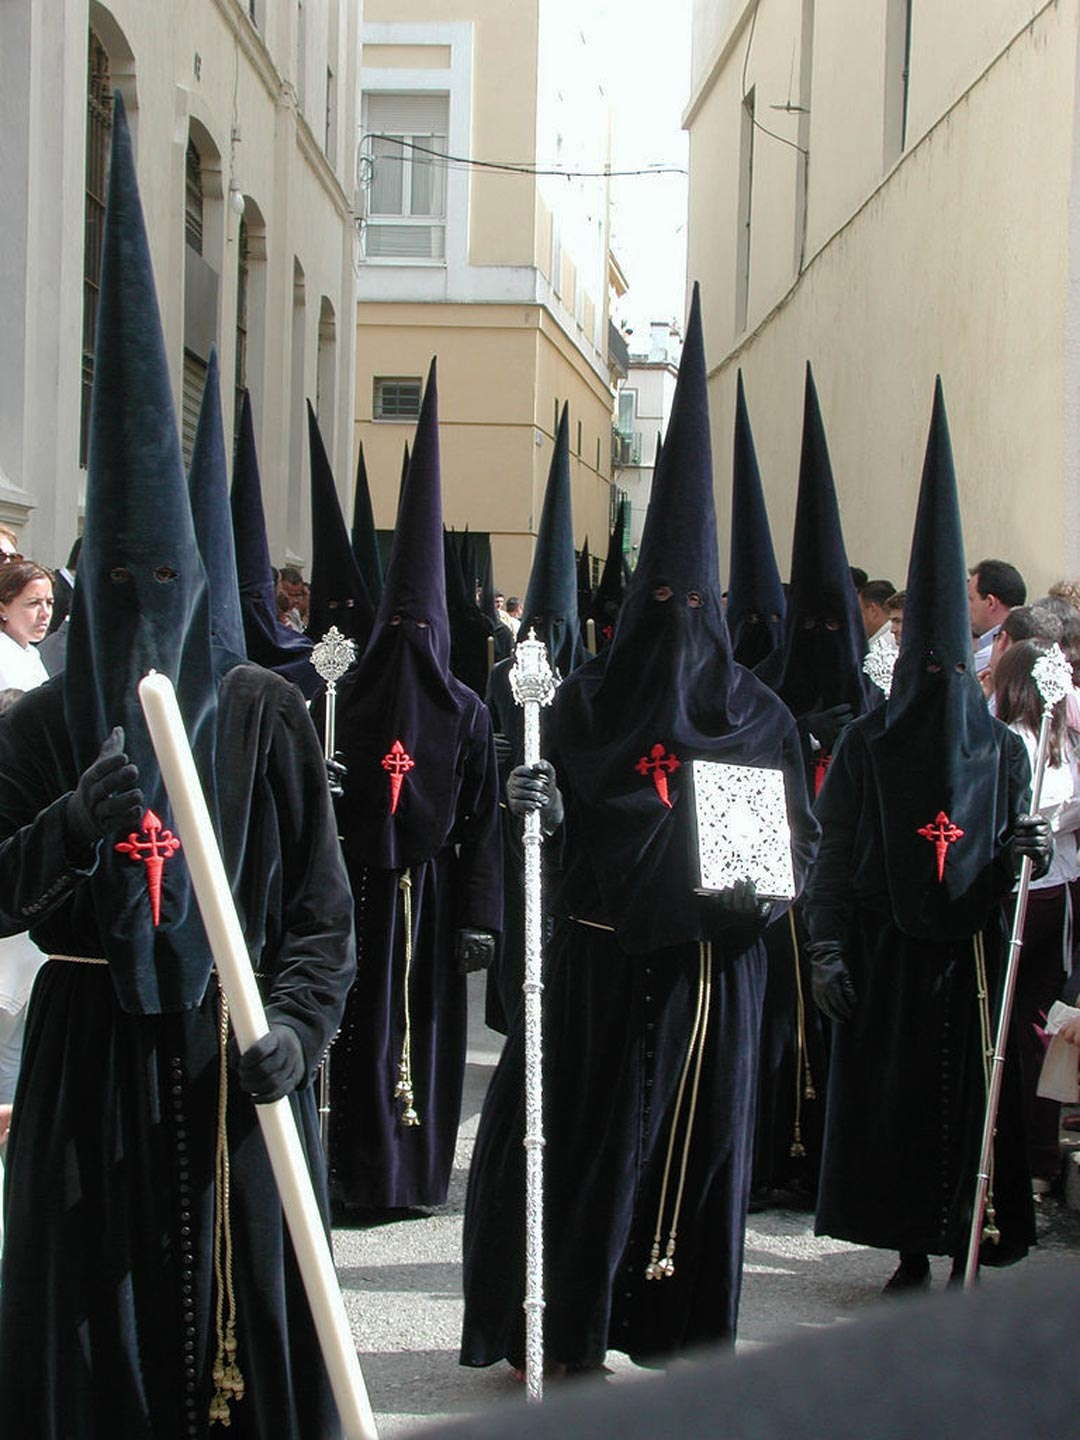 Holy Week Seville